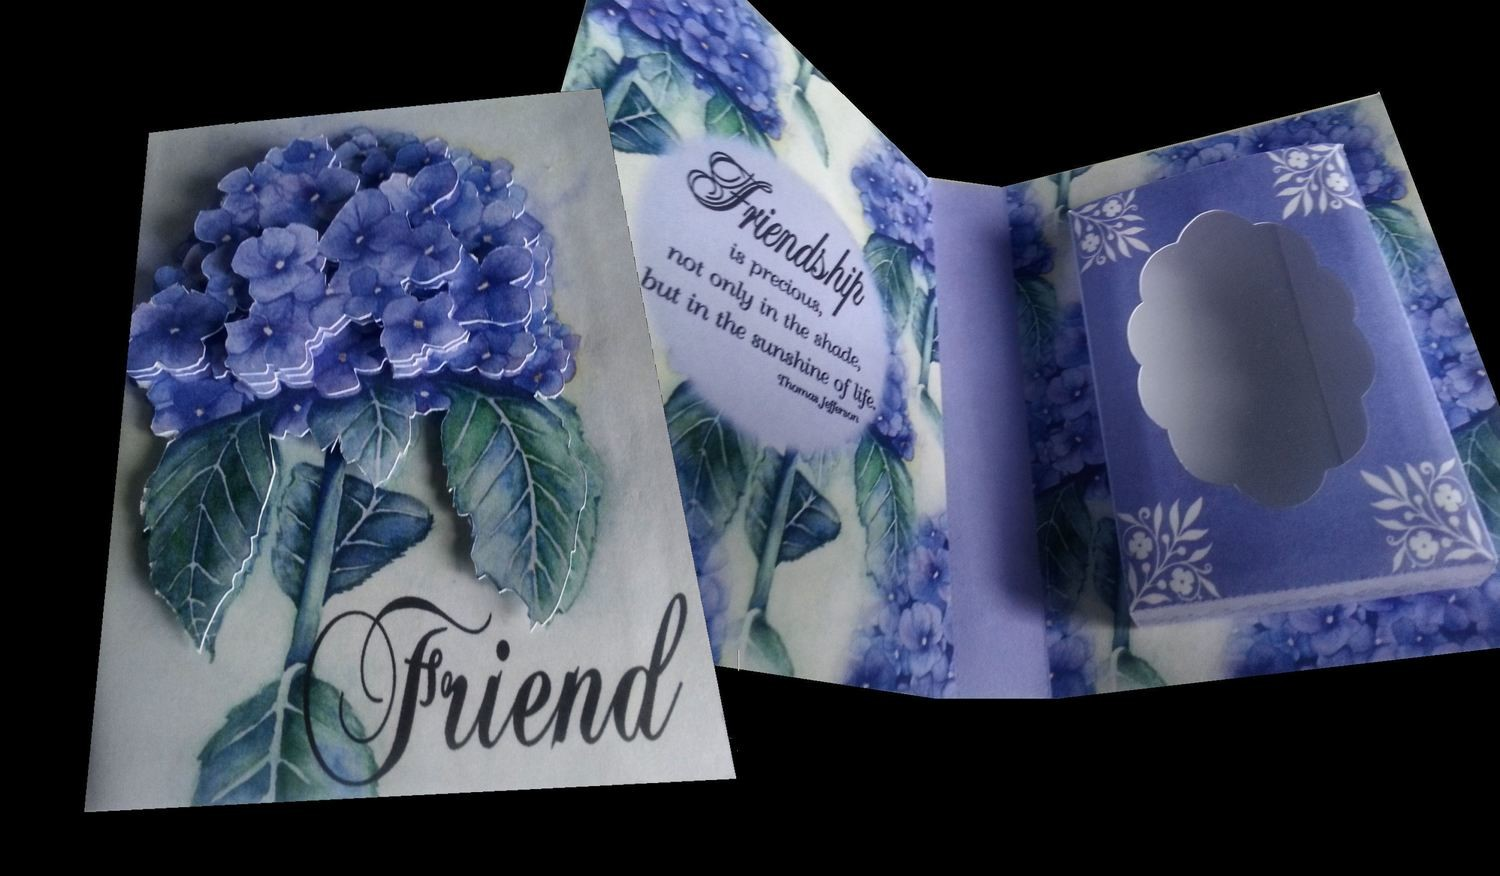 FRIEND Combi Card/Gift Box friendship is precious, not only in the shade but in the sunshine of life '